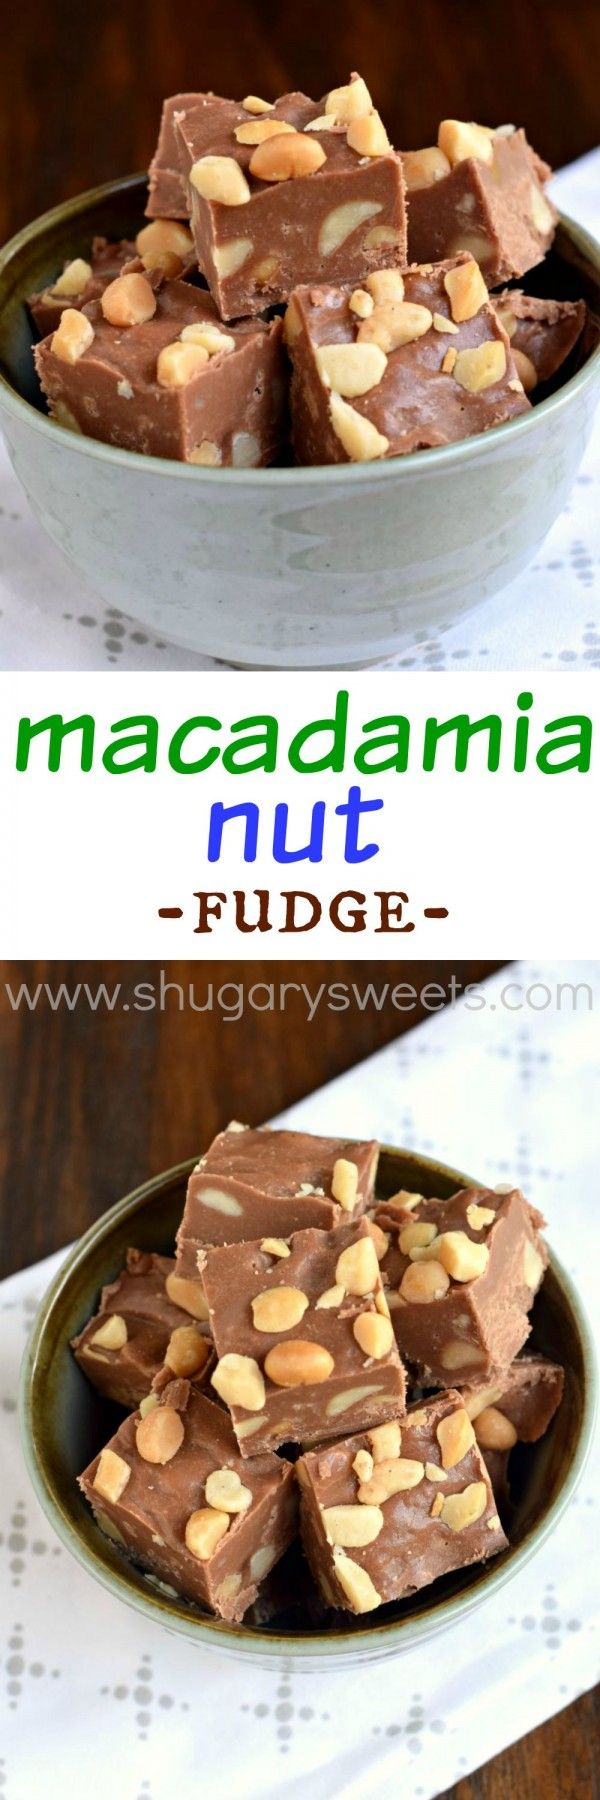 Macadamia Nut Fudge: creamy milk chocolate fudge chock full of macadamia nuts!!